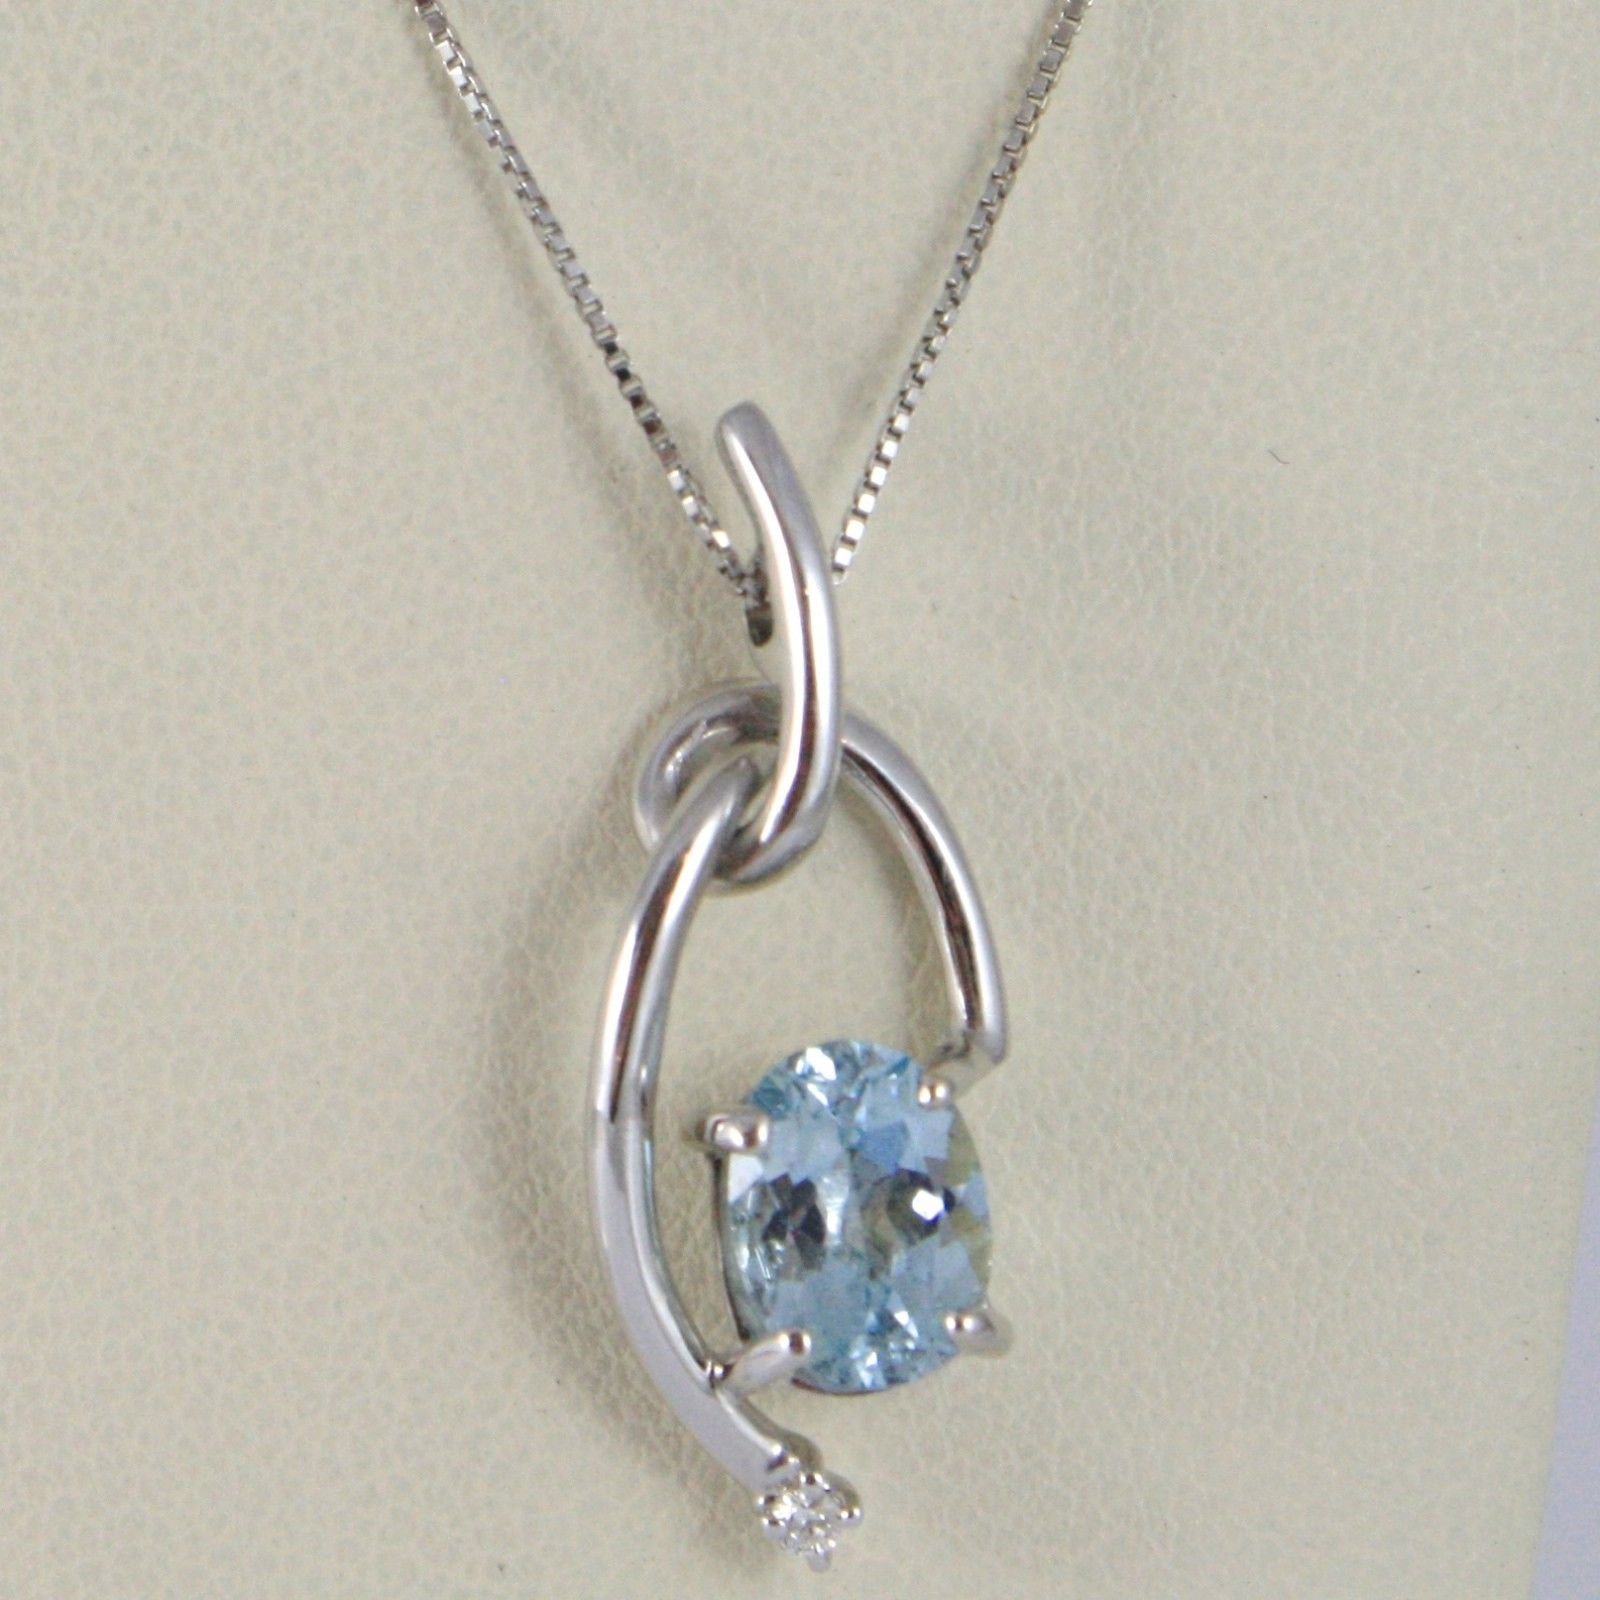 NECKLACE WHITE GOLD 750 - 18K, PENDANT AQUAMARINE OVAL CARAT 0.85 AND DIAMOND